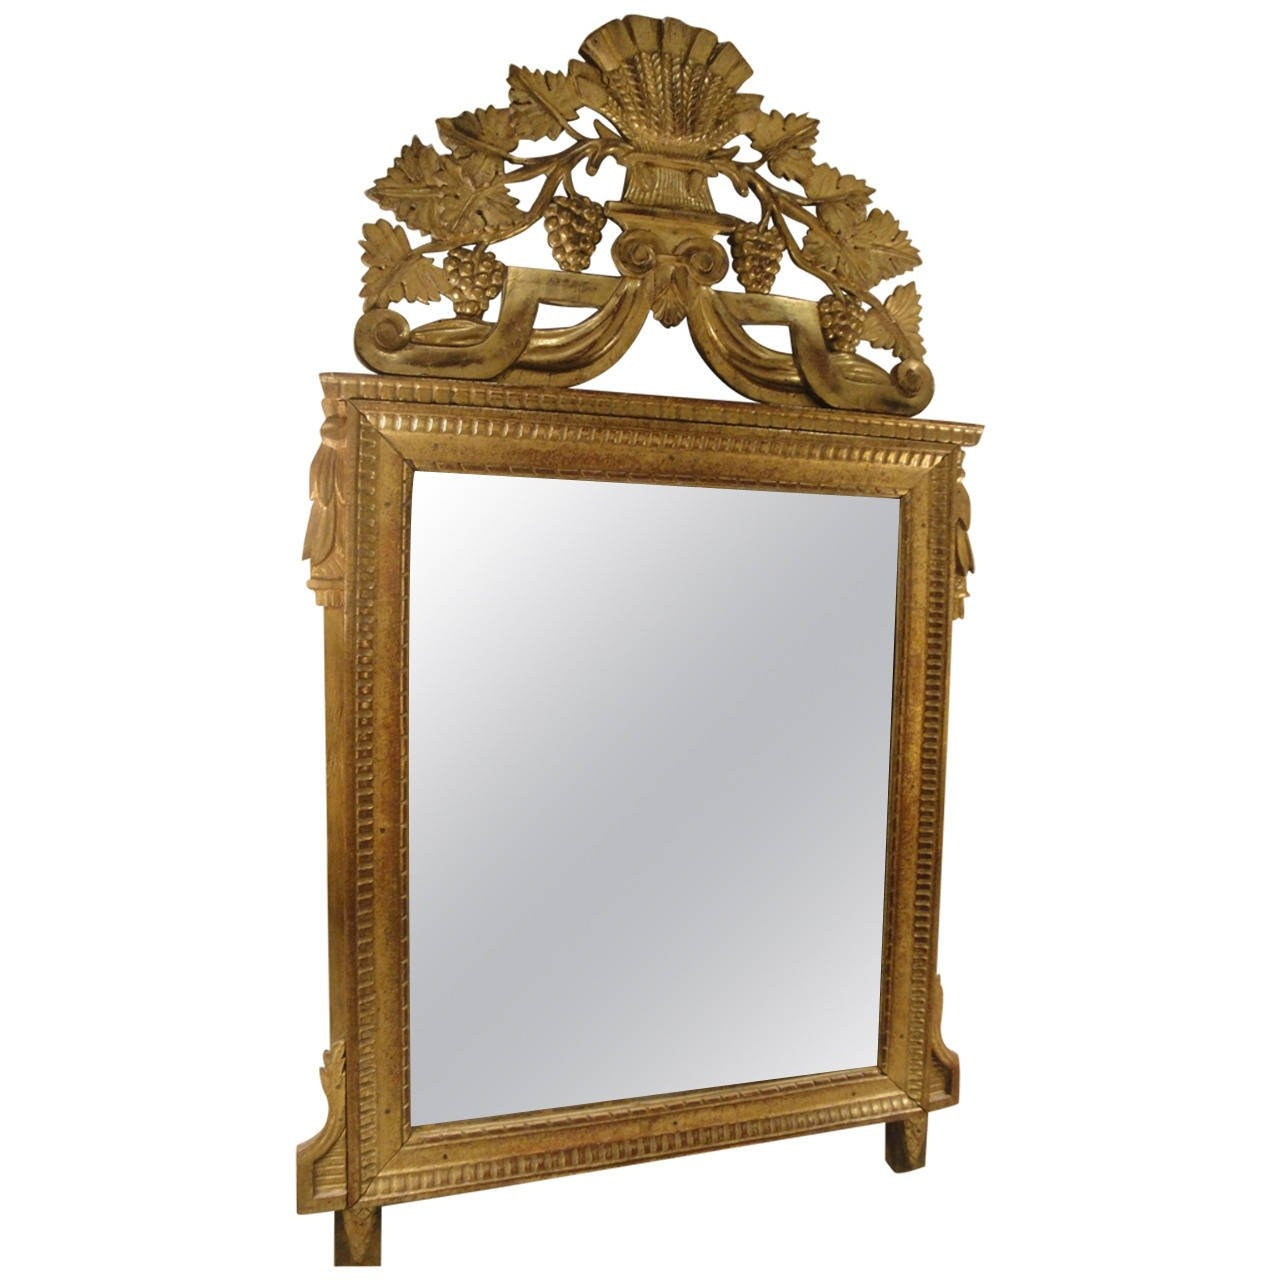 18th Century French Gilded Mirror For Sale At 1stdibs Pertaining To Gilded Mirrors For Sale (Image 2 of 15)